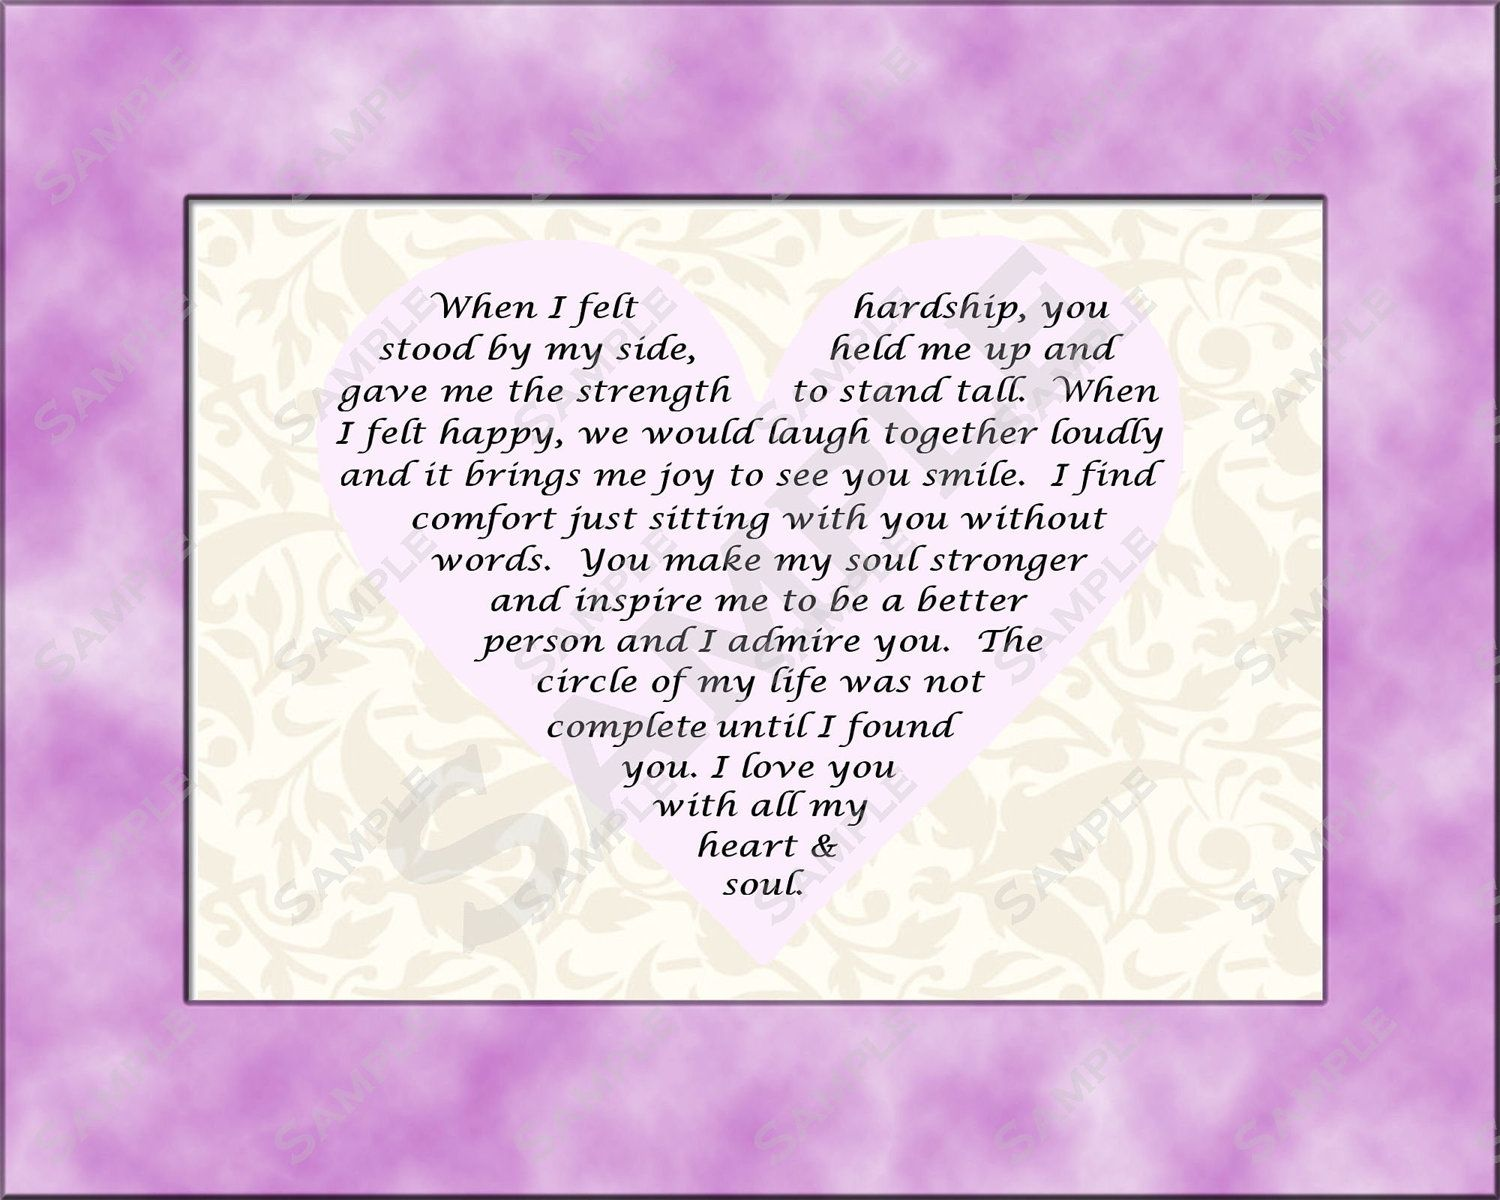 Love Quotes And Poems For Weddings Etcegmfw